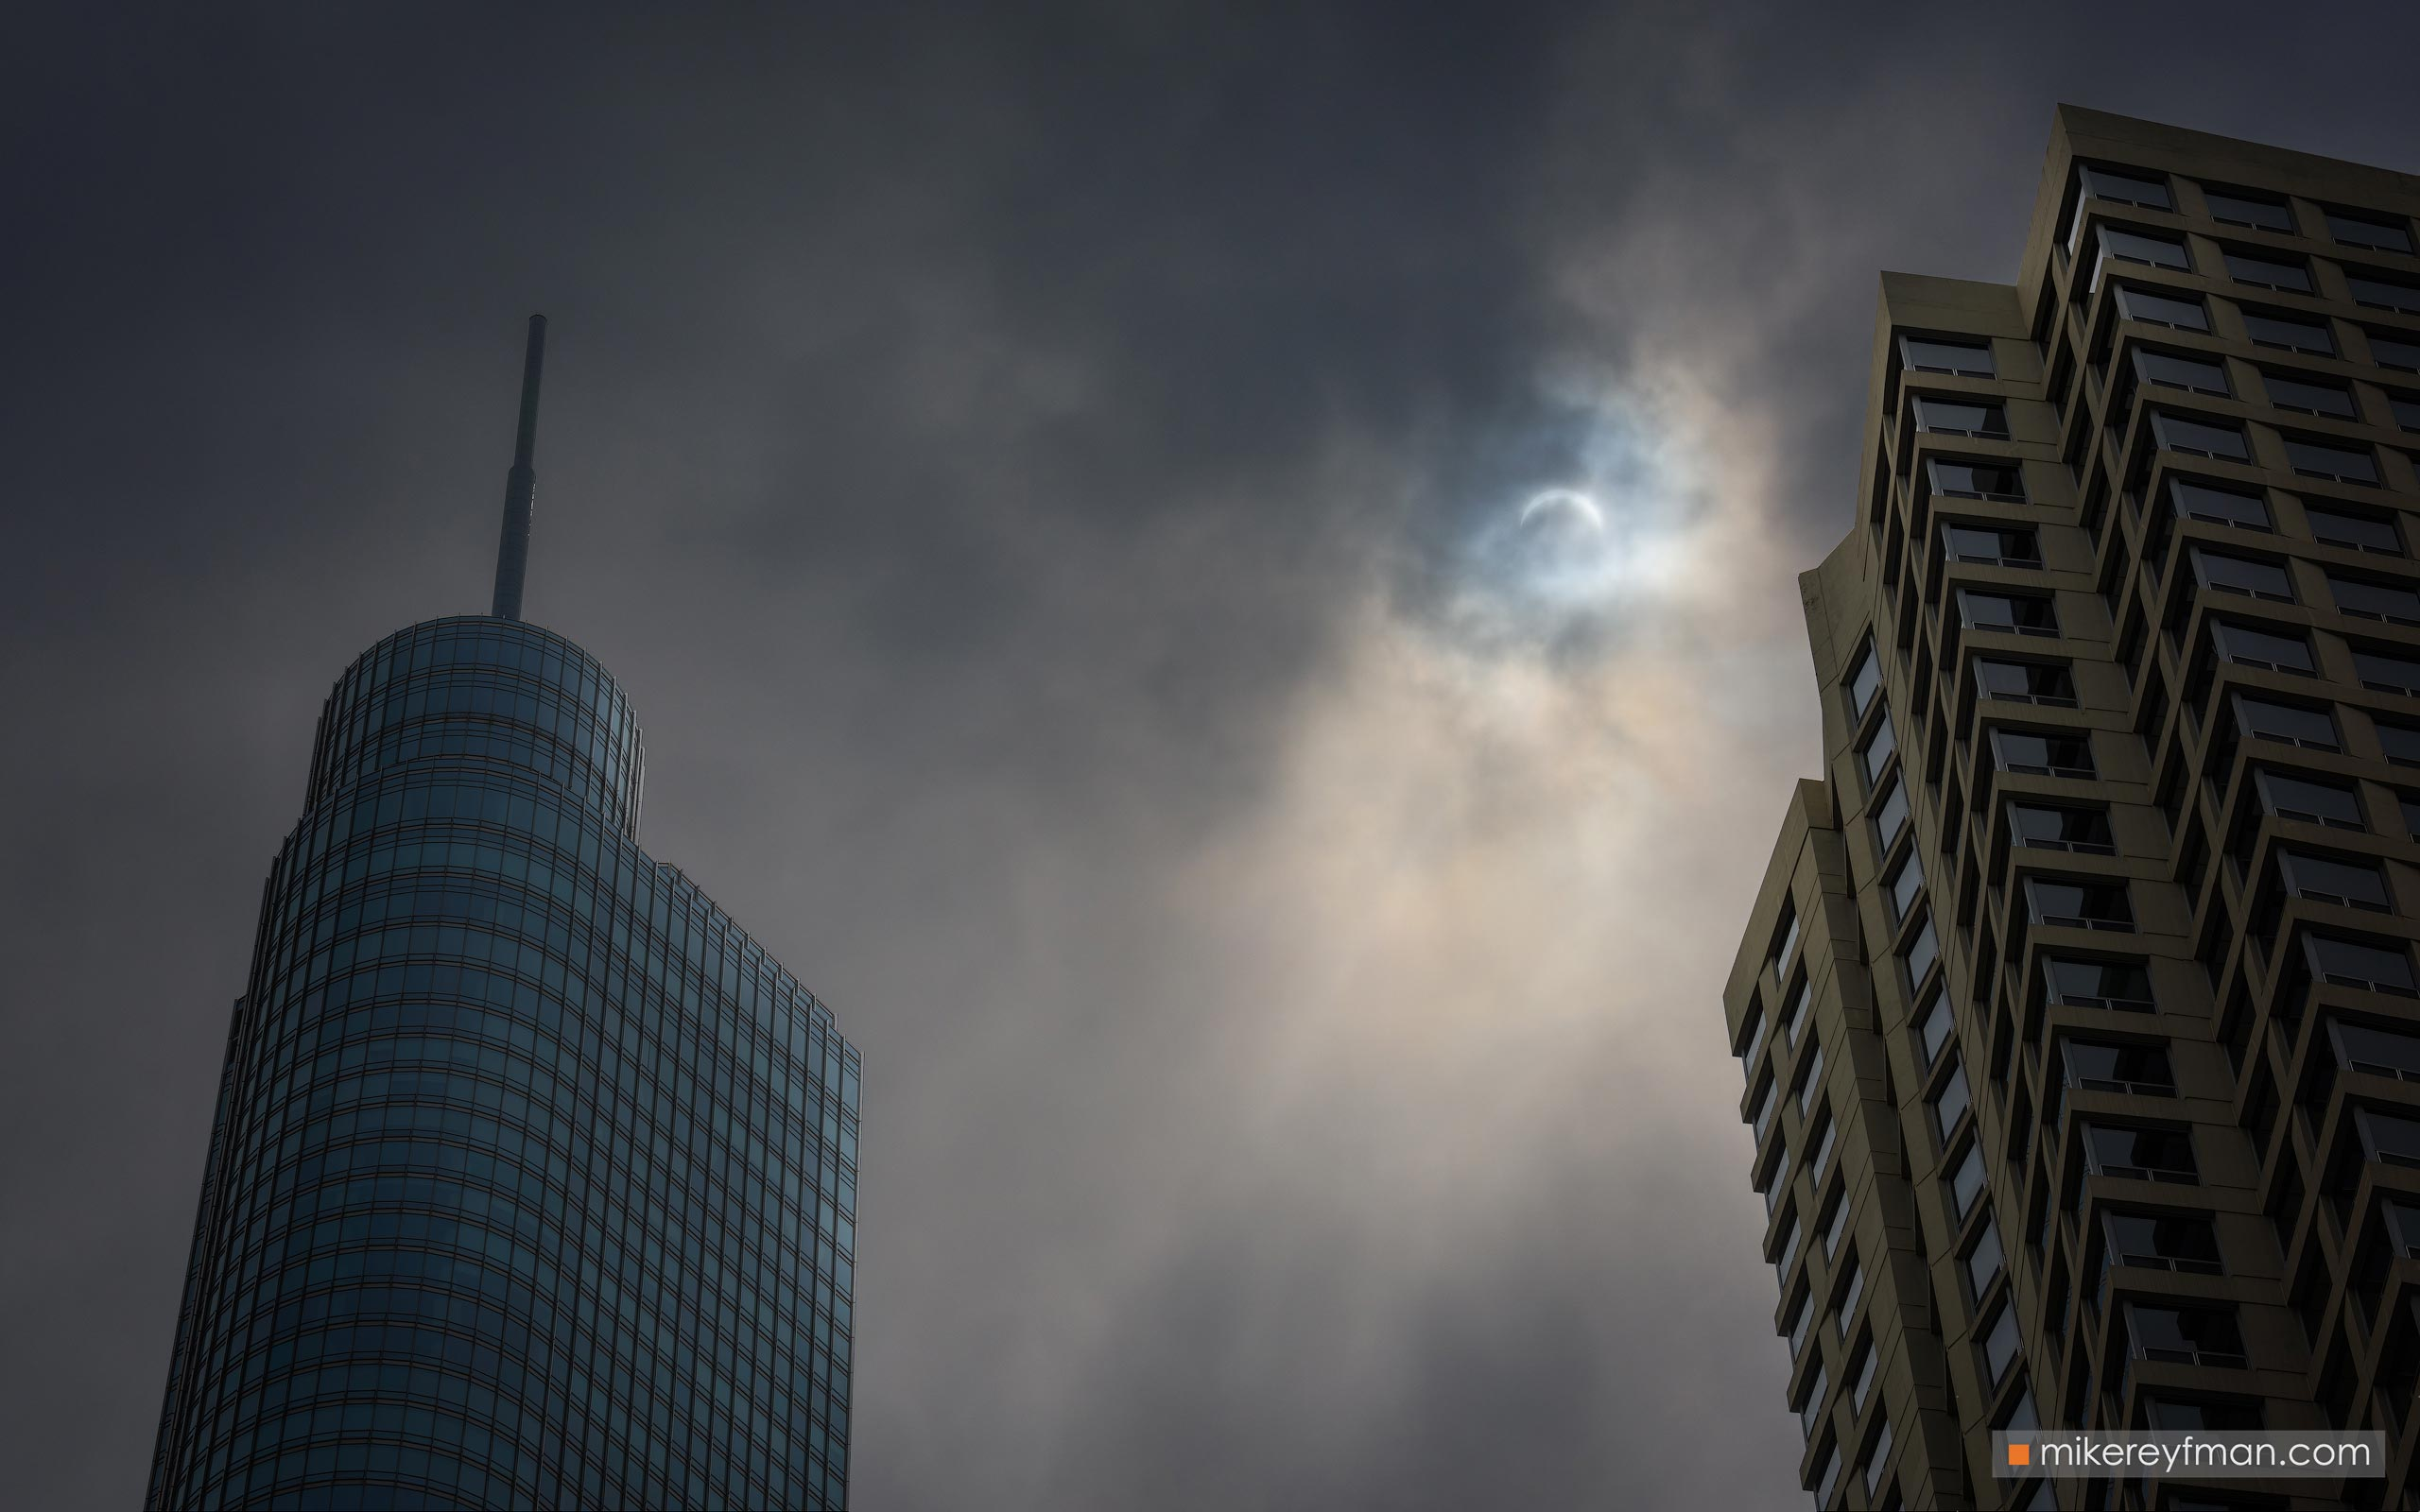 Sun eclipse. City of Chicago, Illinois, USA. 114-CH1-0R23080 - Chicago, USA: The